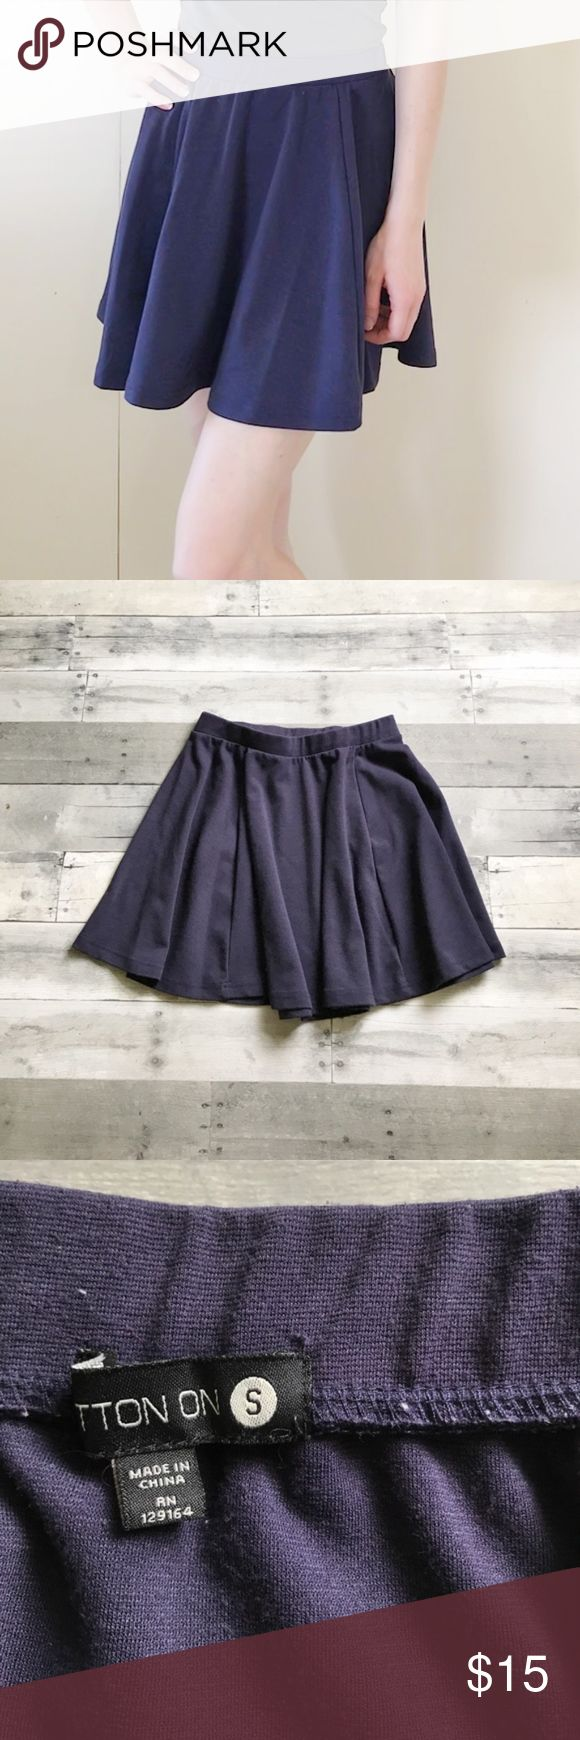 ⭐️NEW LISTING⭐️ Cotton On Navy Circle Skirt Great heavy-knit circle skirt from Cotton On in EUC!  Navy blue skirt with a good firm stretch. Flattering seams! Perfect for the cold weather as this skirt is not light weight and won't be blown around so easily by the wind! Great with tights and your favorite boots! Cotton On Skirts Circle & Skater